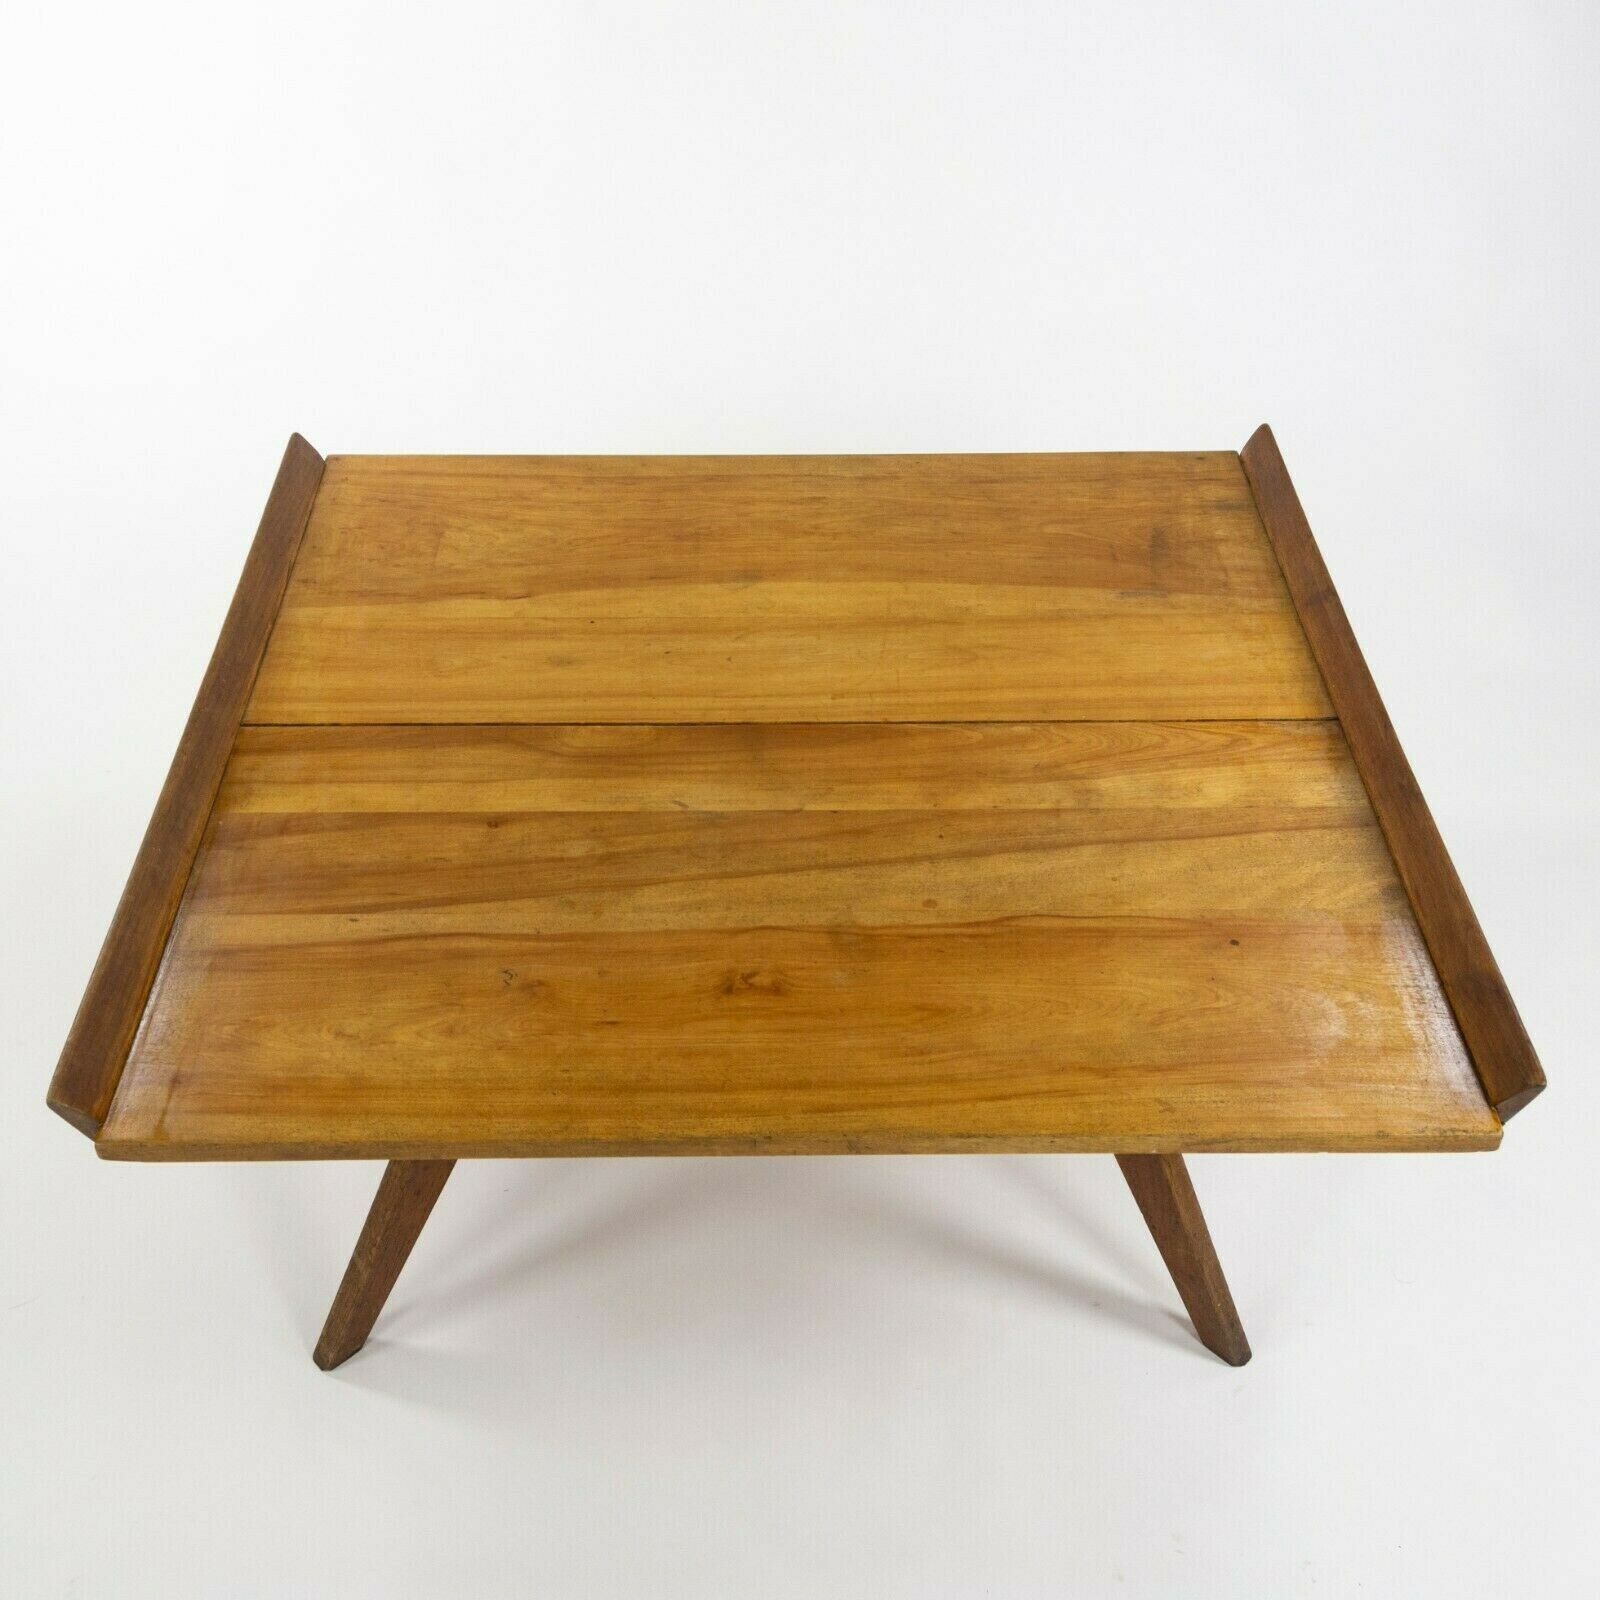 SOLD 1947 George Nakashima for Knoll Associates N10 Coffee Table in Birch and Walnut